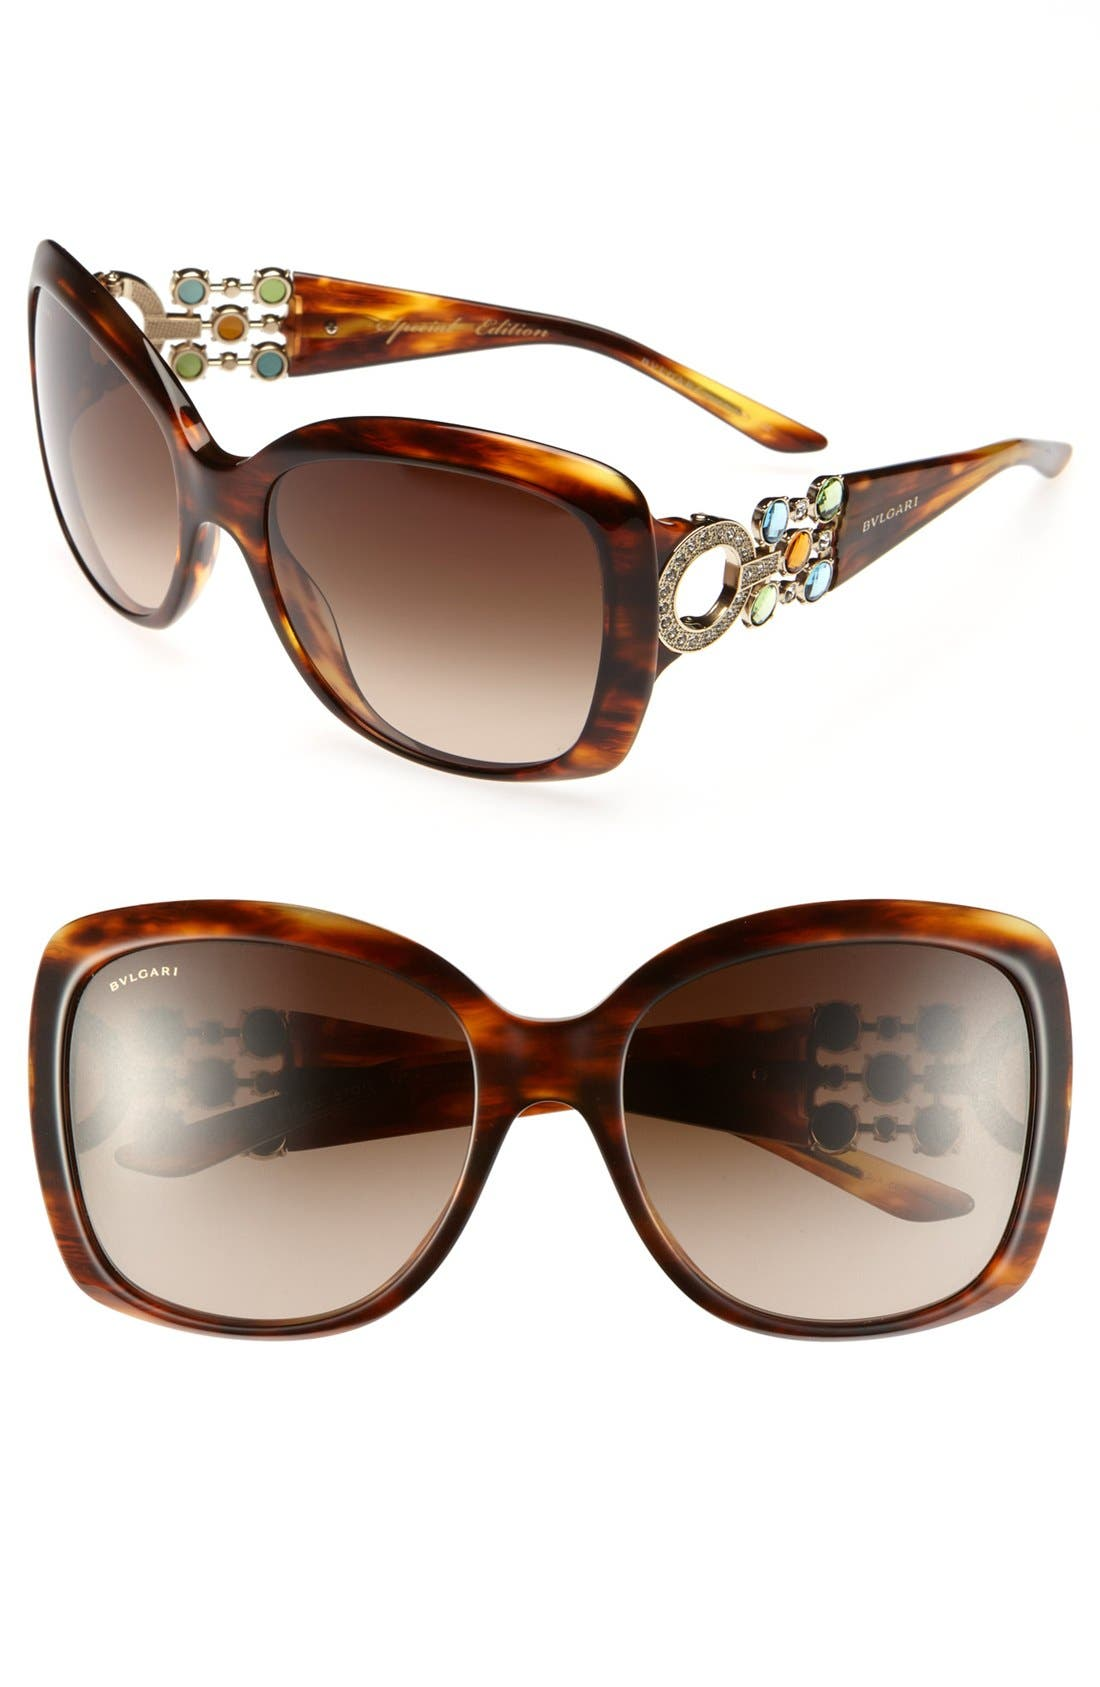 Main Image - BVLGARI 57mm Embellished Temple Sunglasses